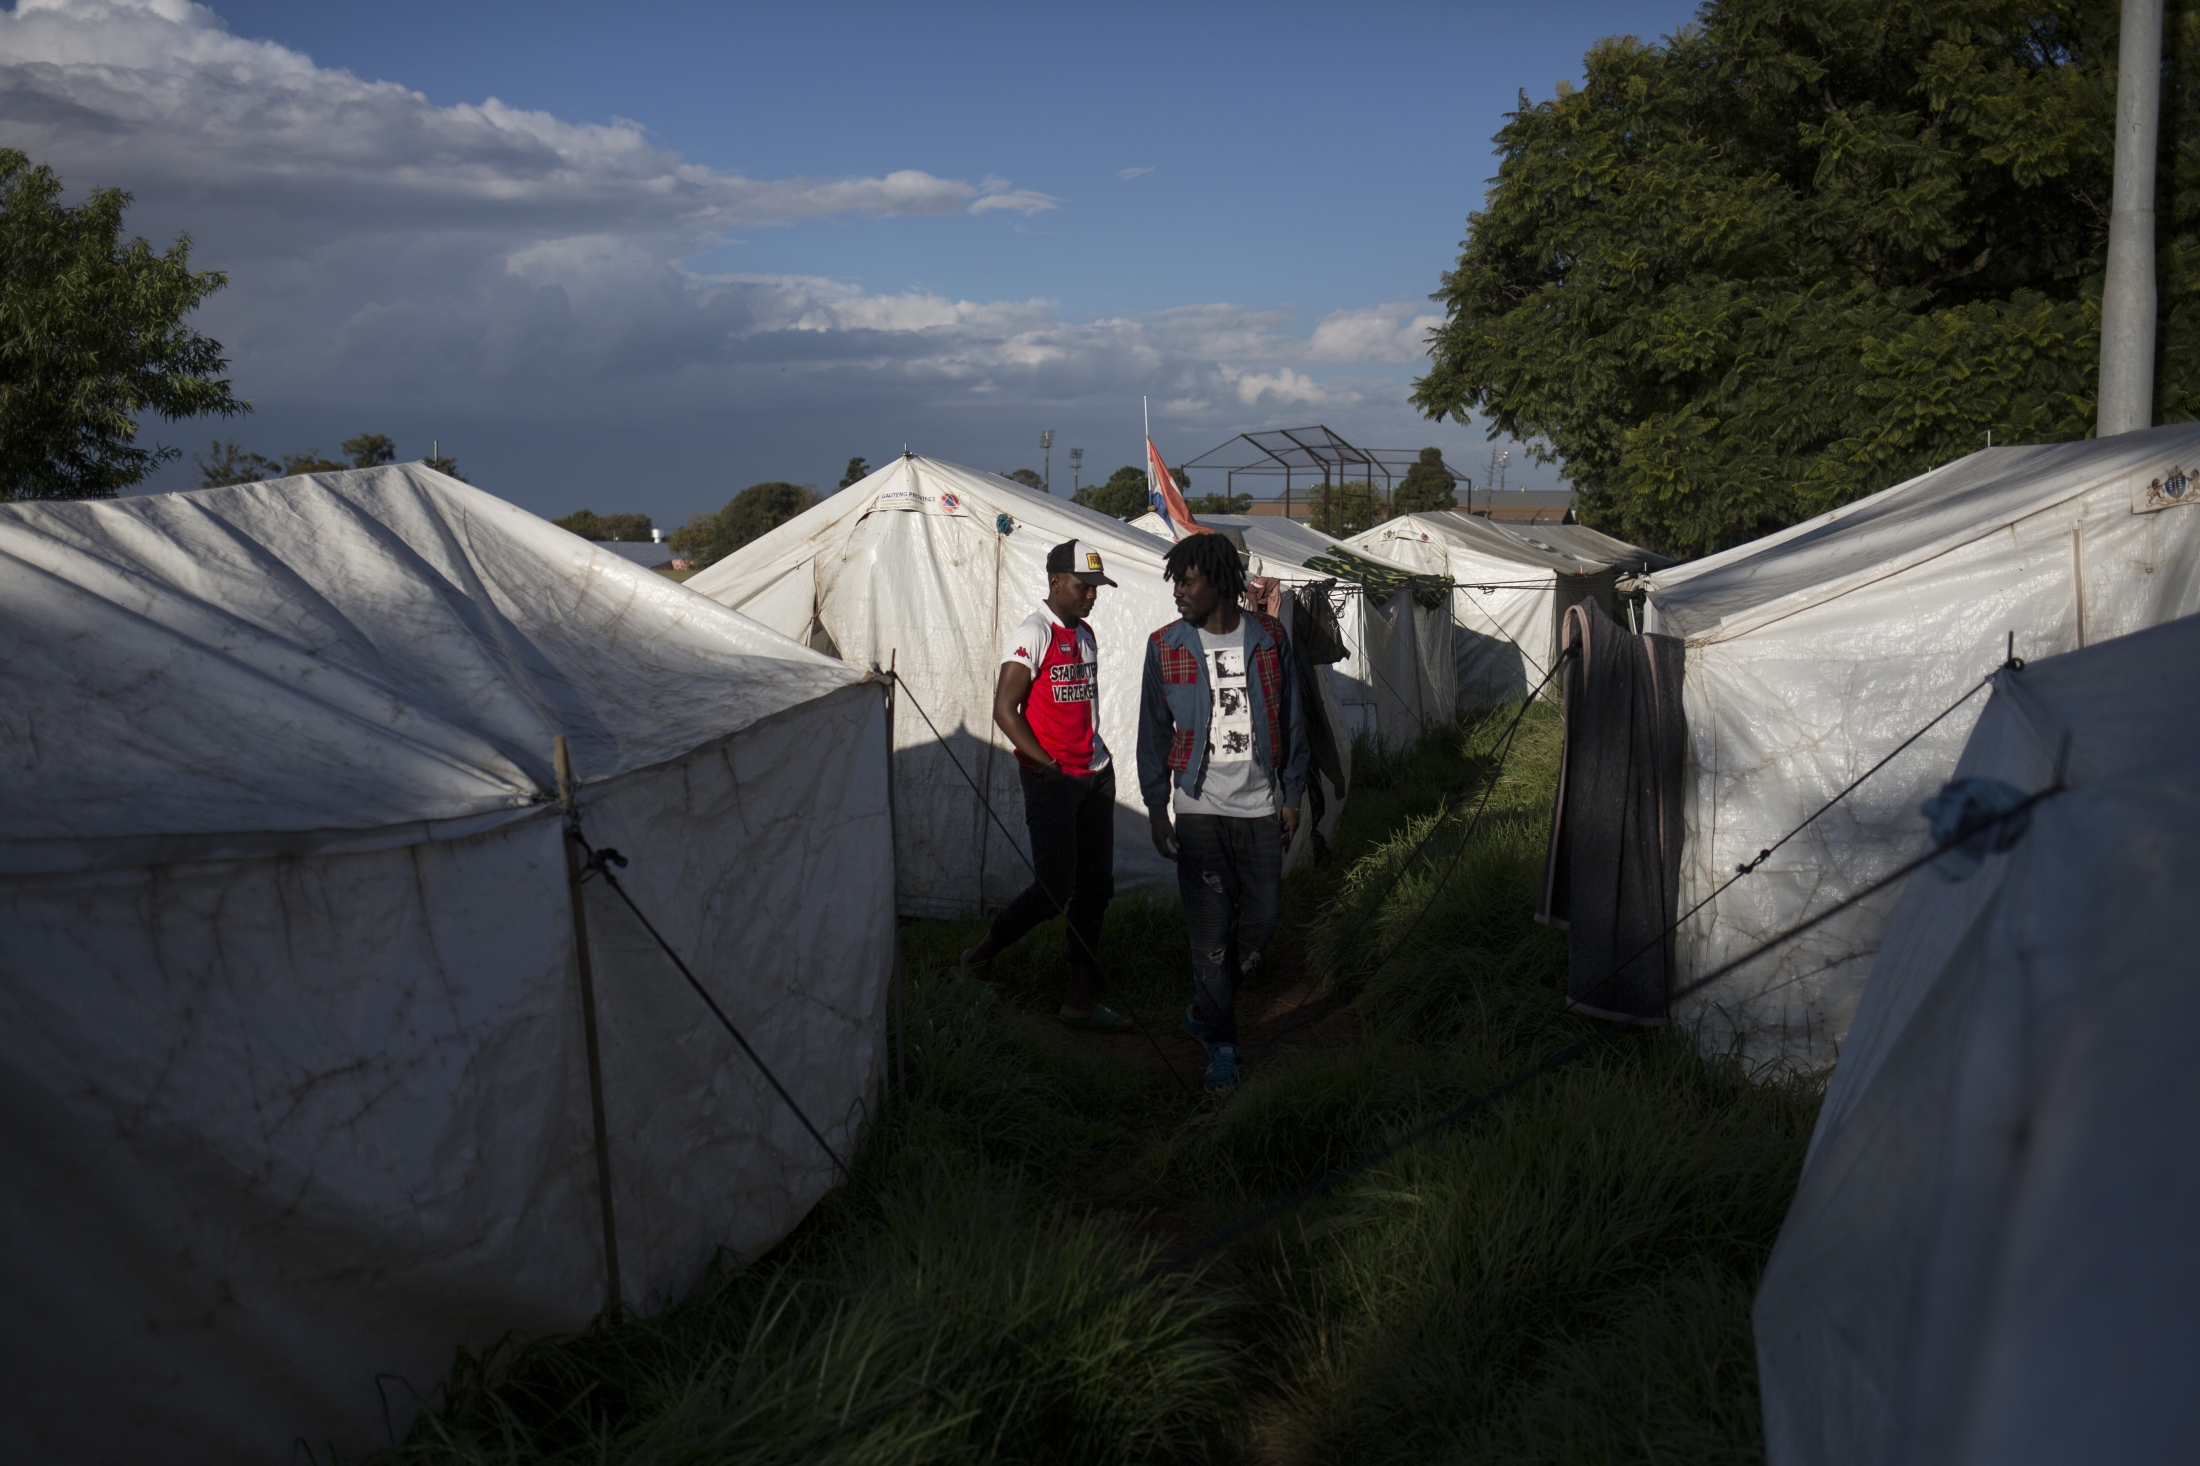 Migrants walk amid tents provided by the city government after they were evicted. April 19, 2018.